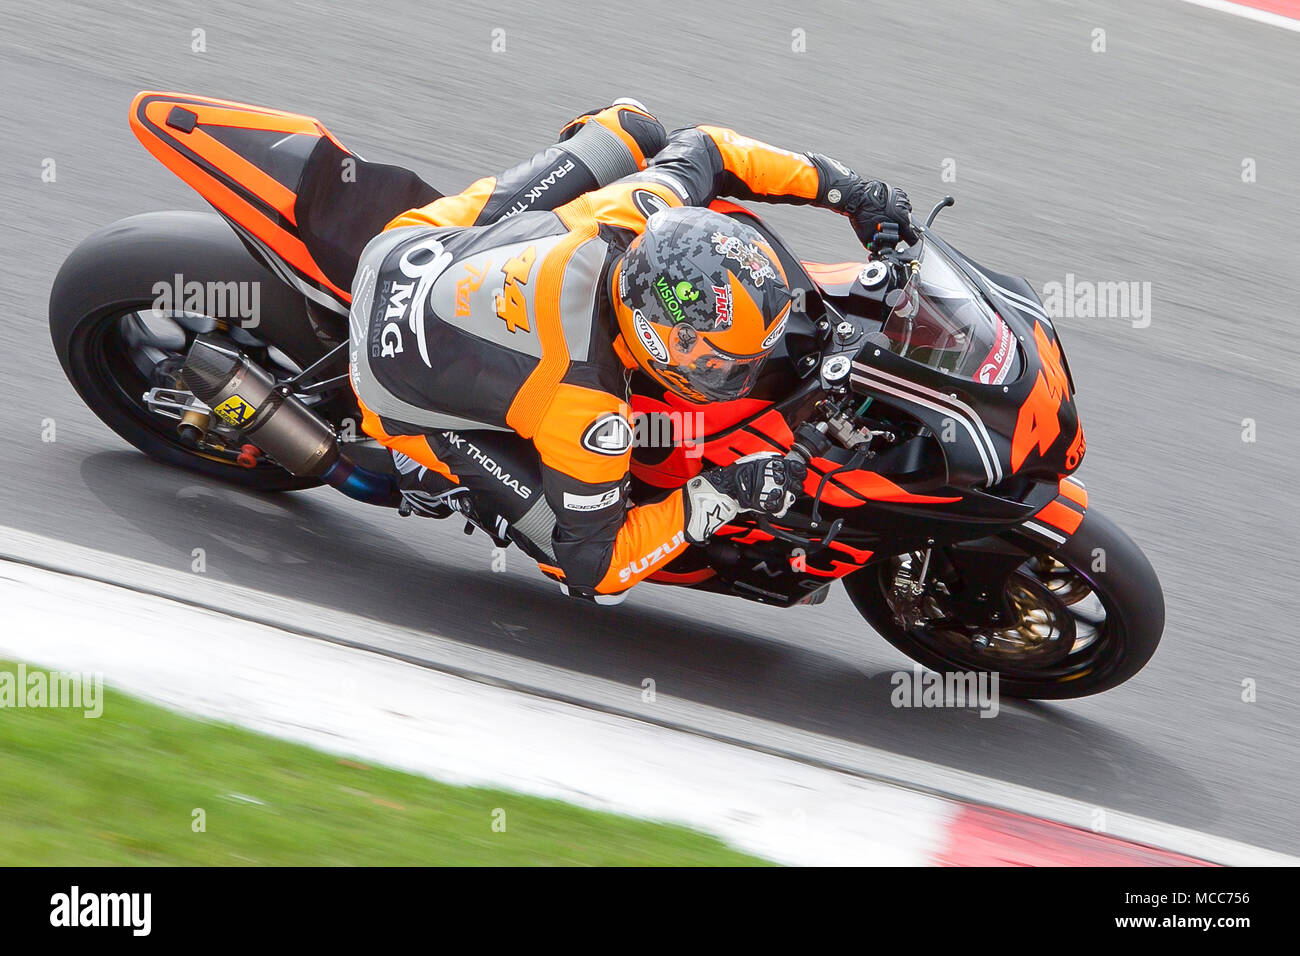 Gino Rea riding a Suzuki GSXR-1000 with OMG racing team at the British Super Bike championship at Brands Hatch Sunday 15th April 2018 - Stock Image